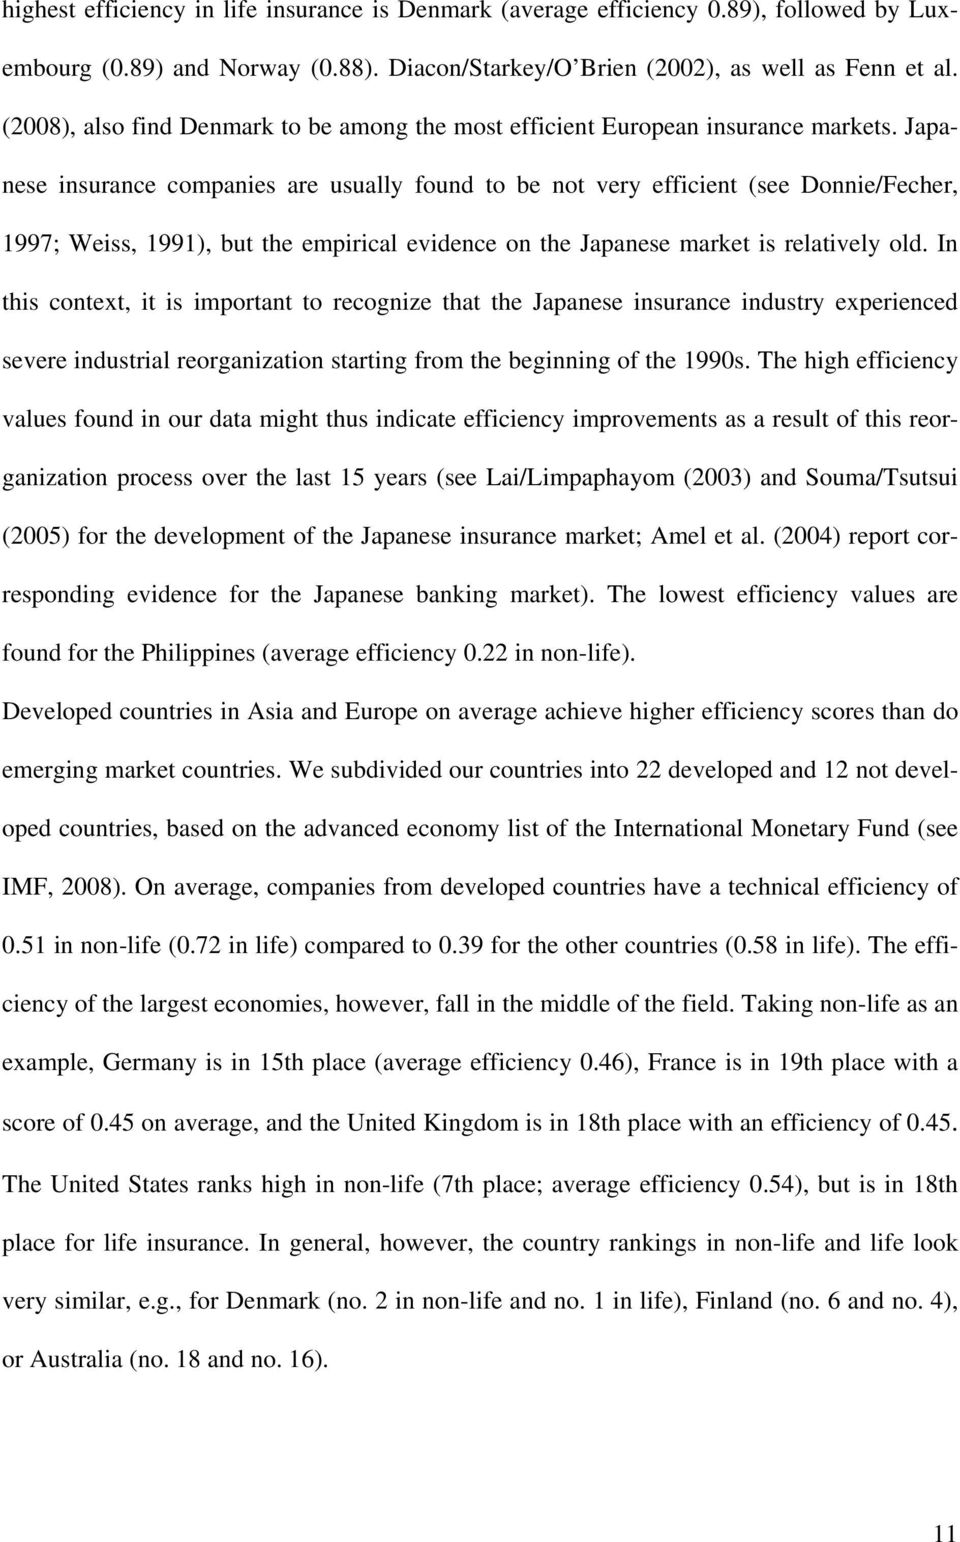 Japanese insurance companies are usually found to be not very efficient (see Donnie/Fecher, 1997; Weiss, 1991), but the empirical evidence on the Japanese market is relatively old.